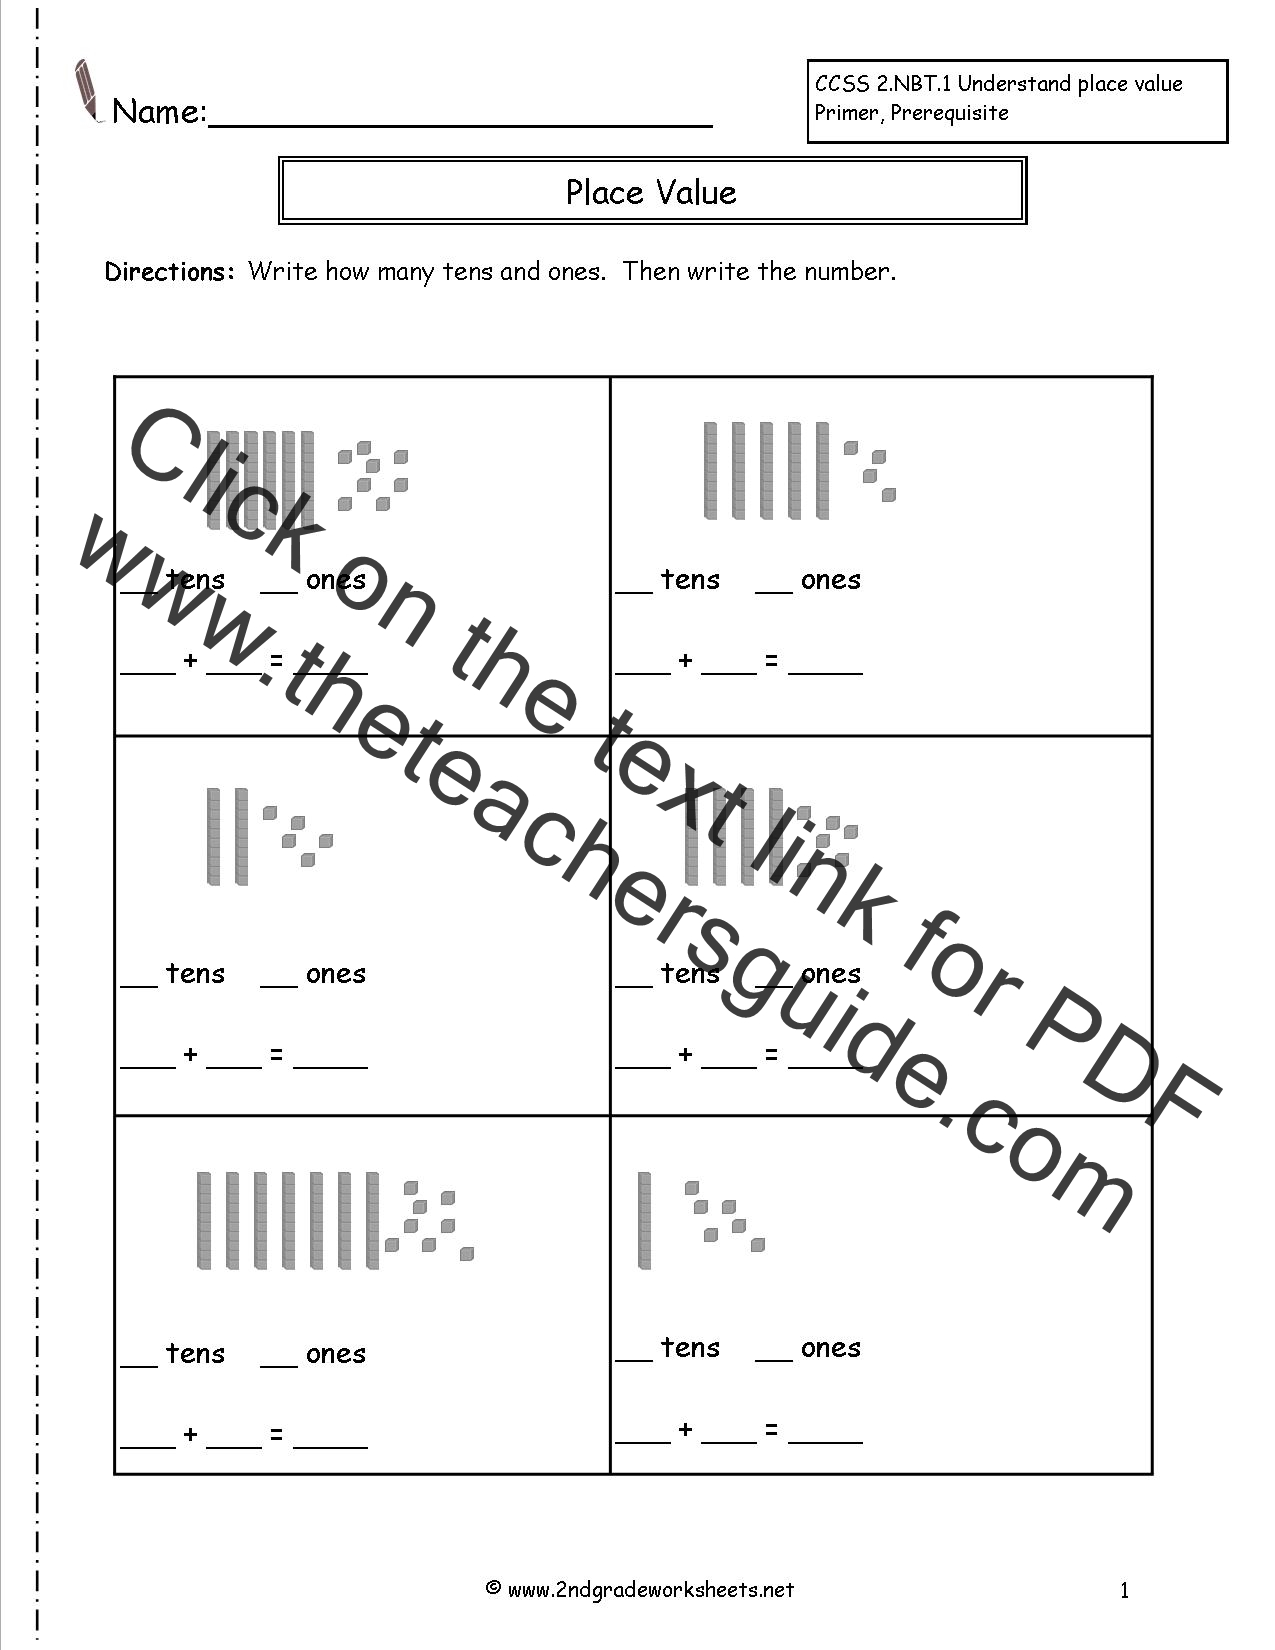 Worksheet Common Core Math Worksheets For 2nd Grade second grade place value worksheets worksheet common core